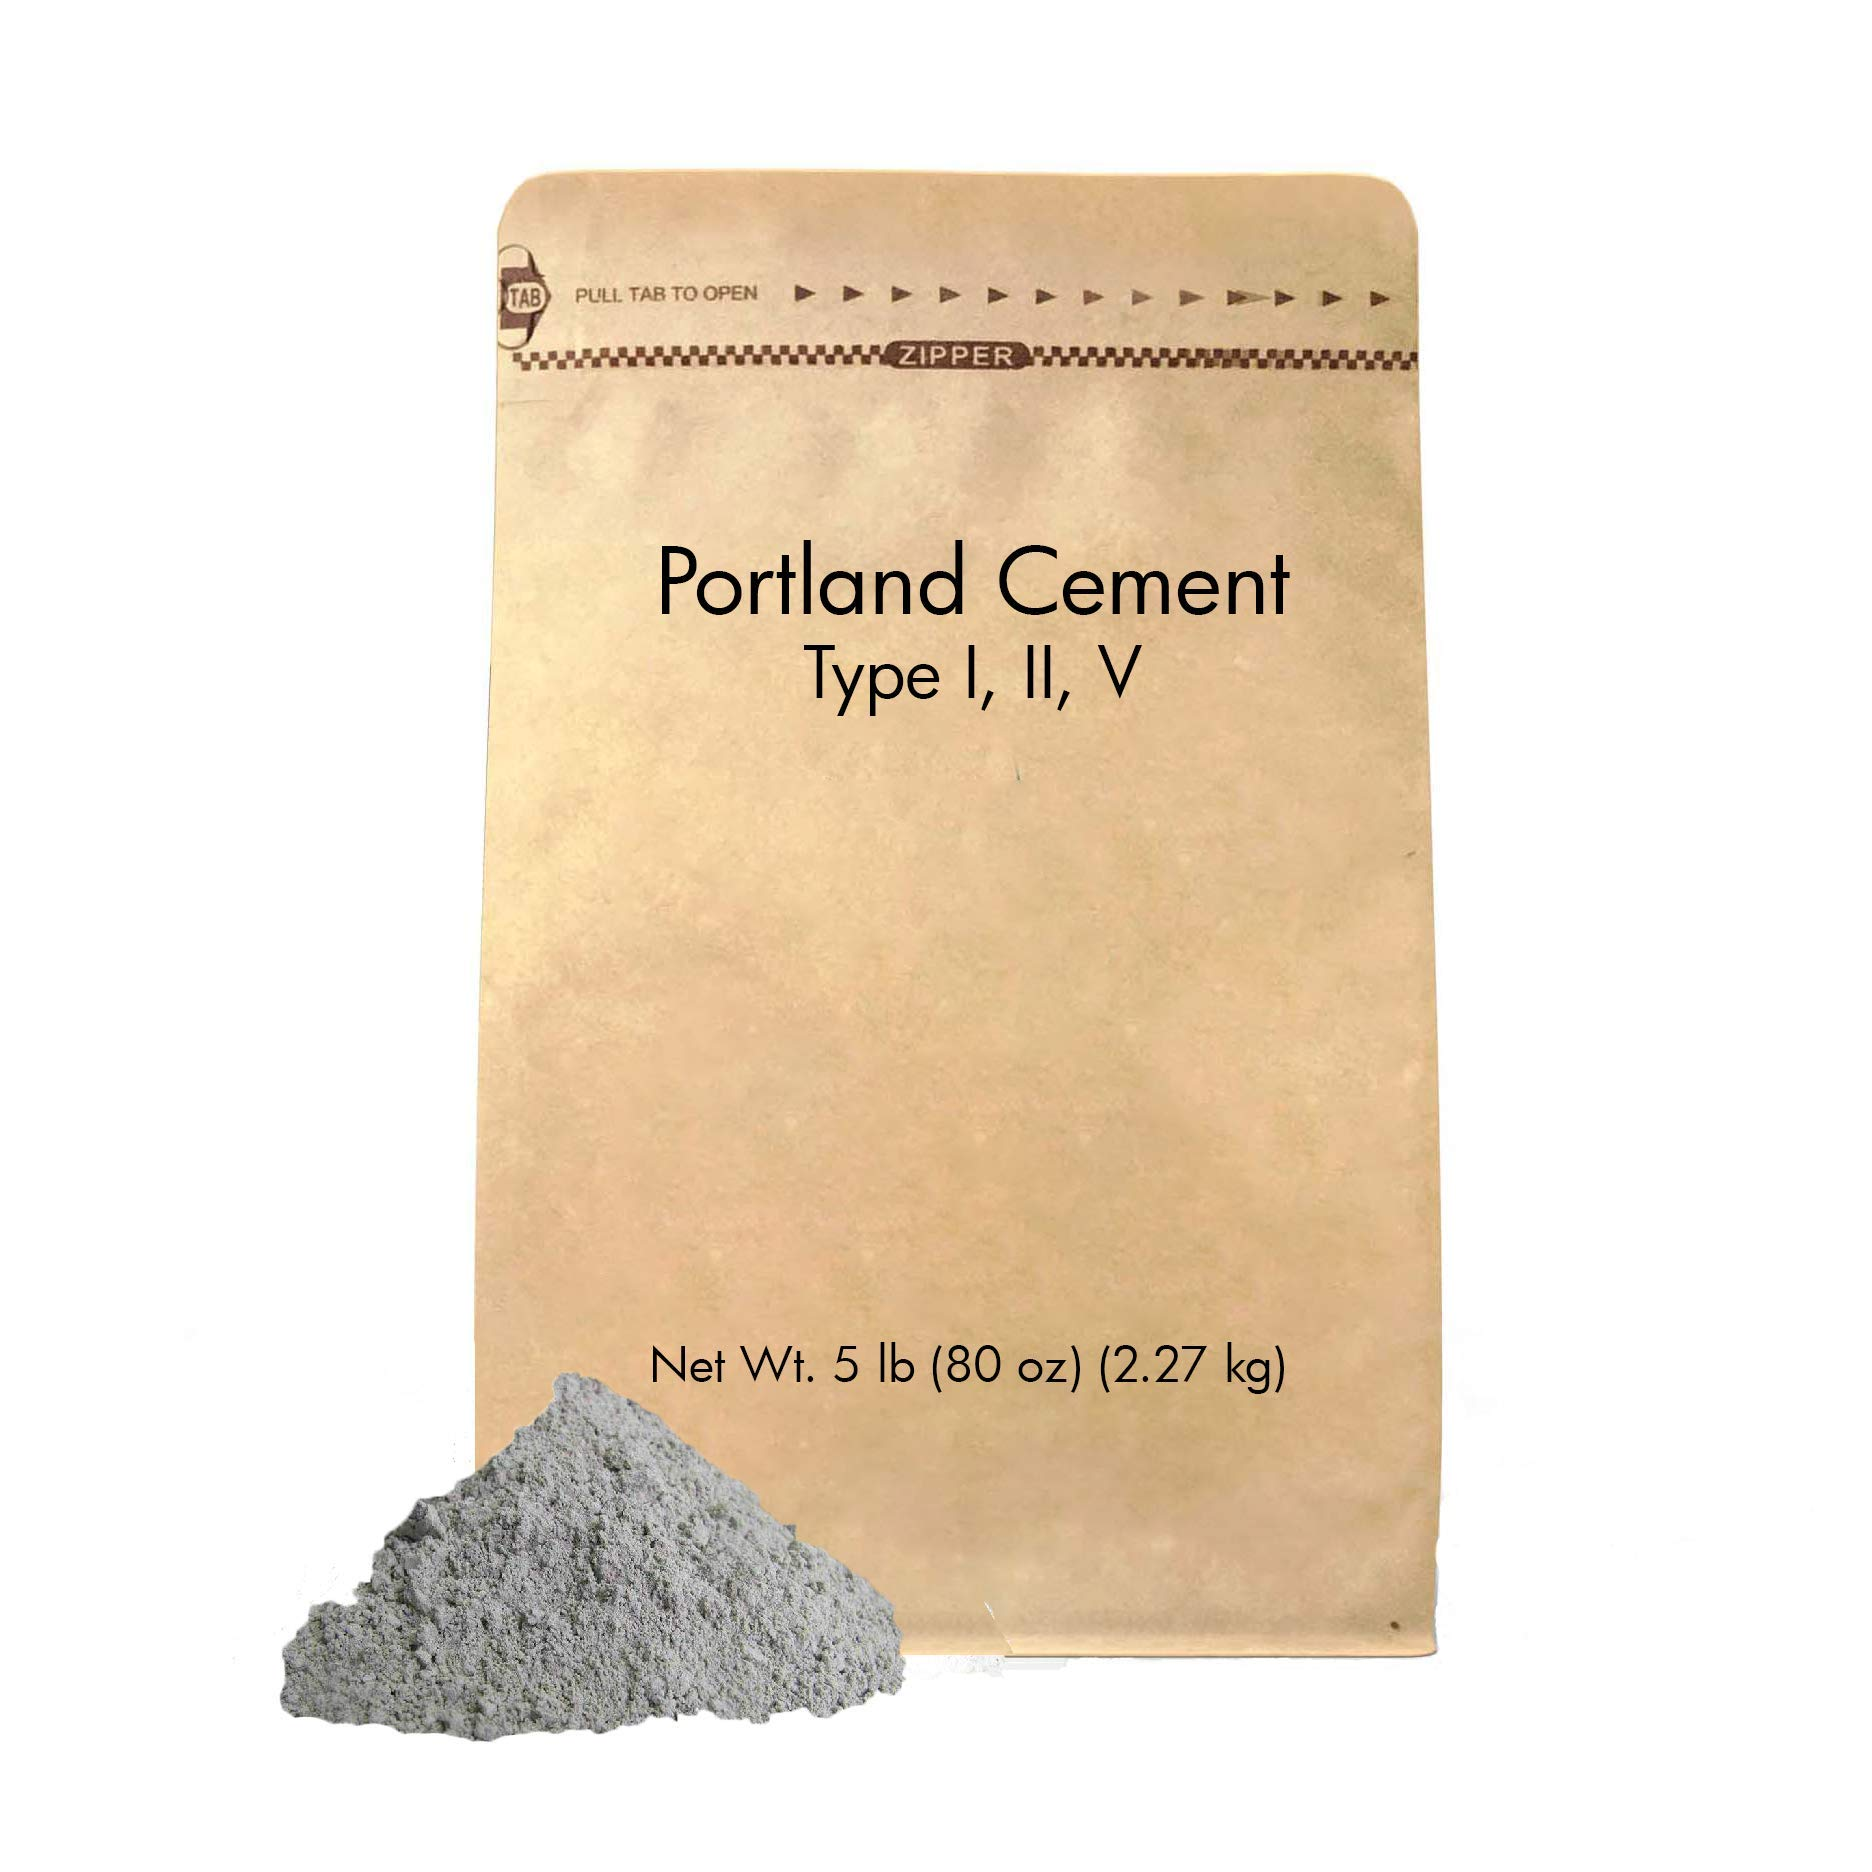 Portland Cement (5 lb.) Eco-Friendly Packaging, Sulfate Resistant, Low Hydration Heat, Type I, II, V